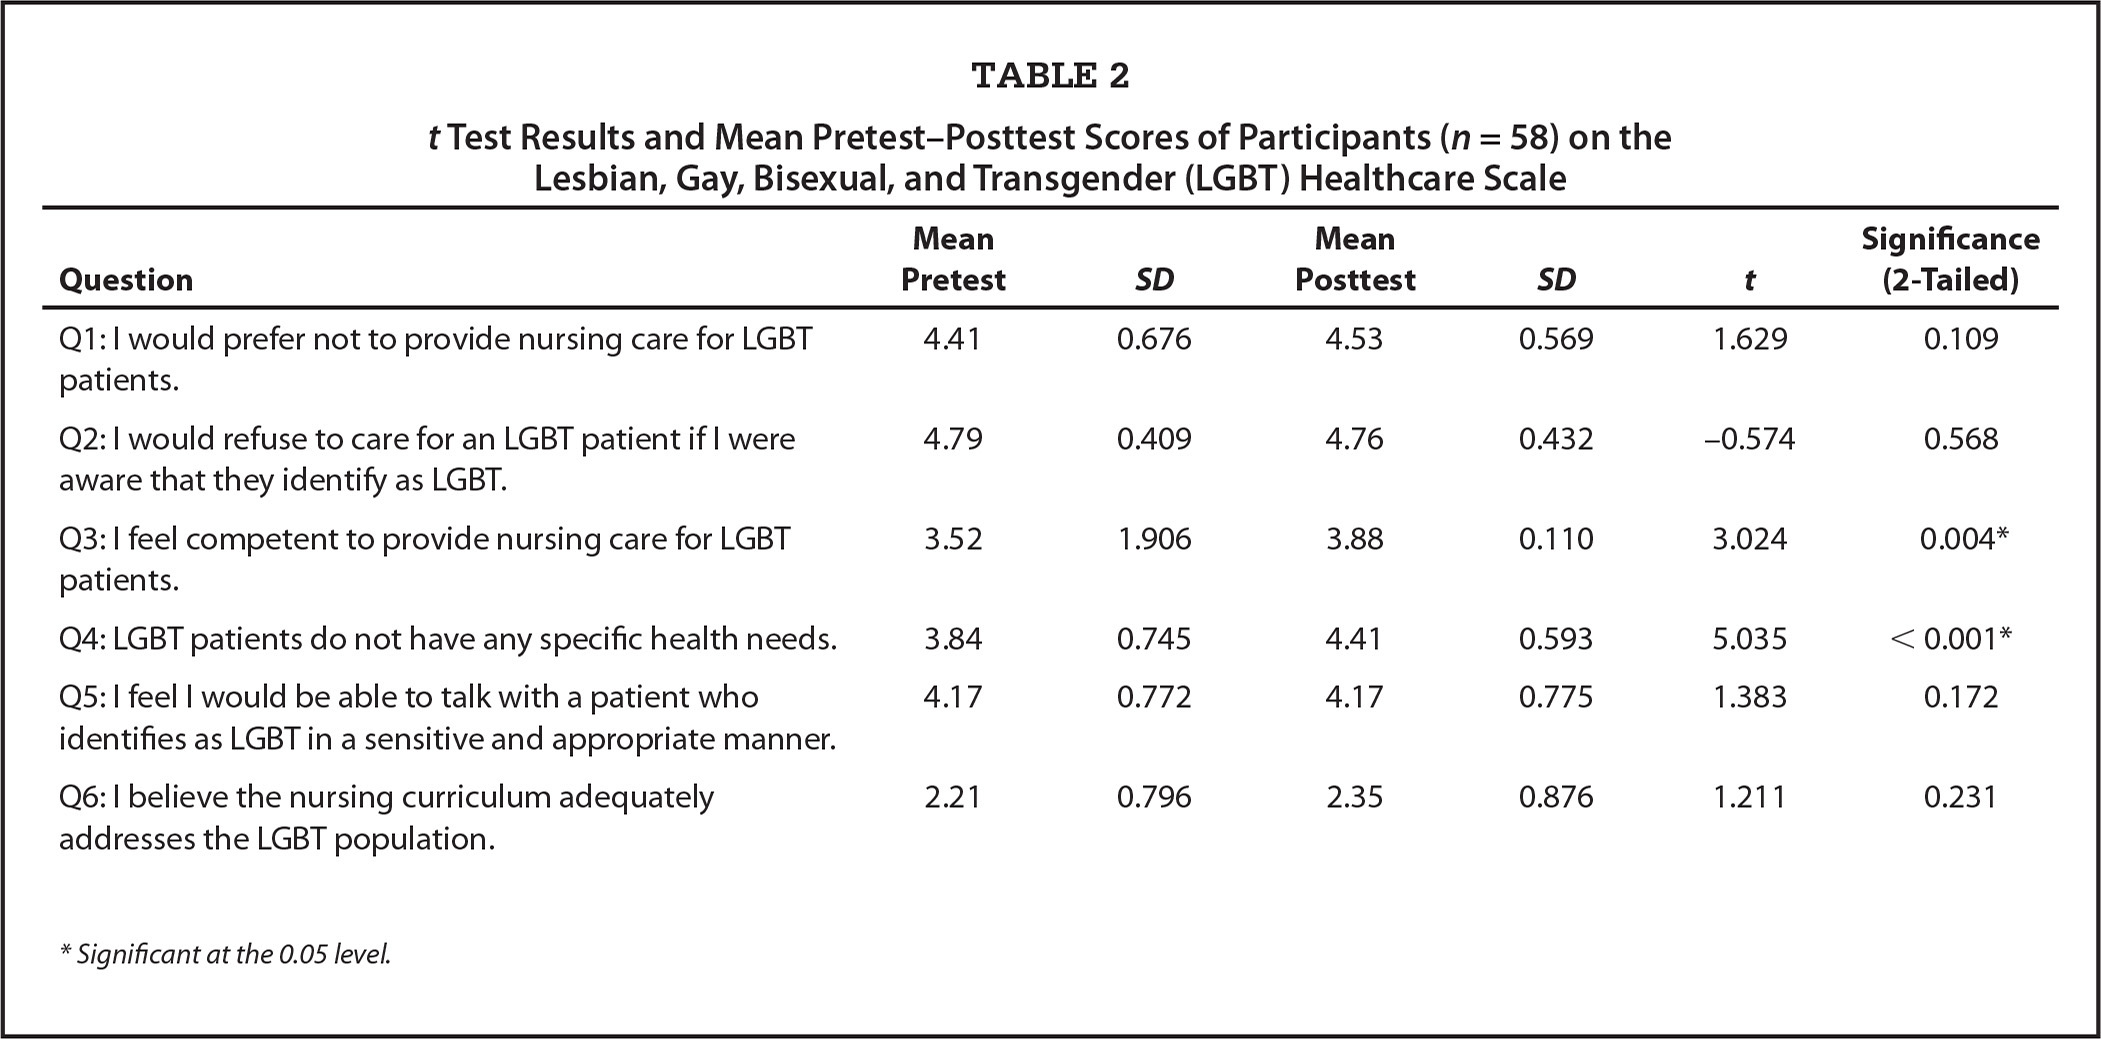 t Test Results and Mean Pretest–Posttest Scores of Participants (n = 58) on the Lesbian, Gay, Bisexual, and Transgender (LGBT) Healthcare Scale